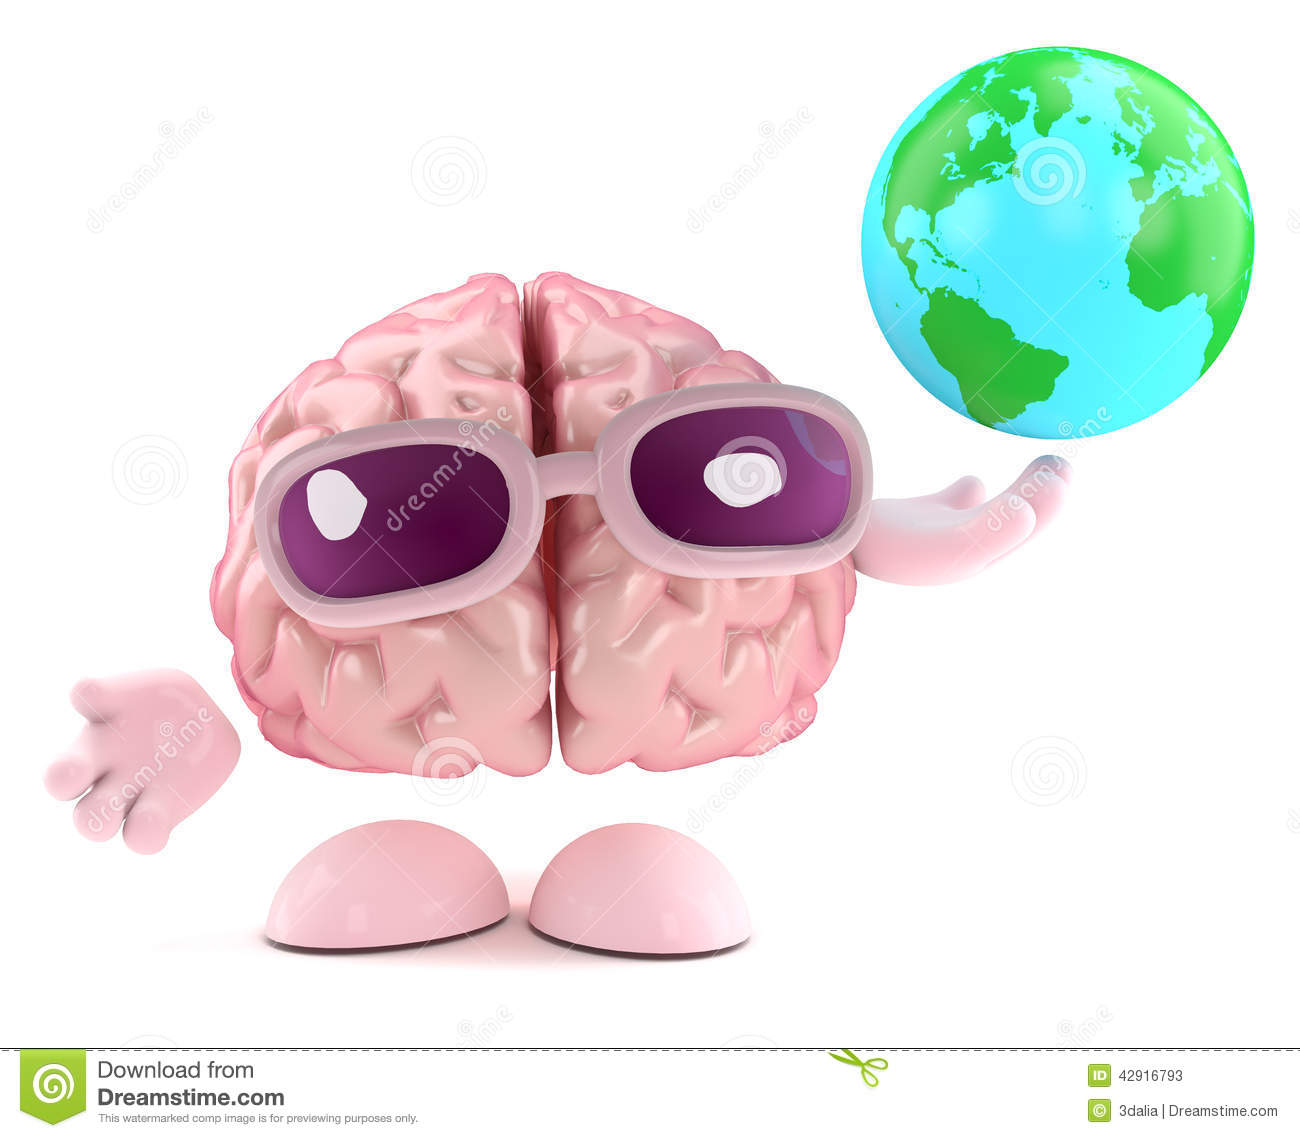 3d Brain character holds a globe of the Earth